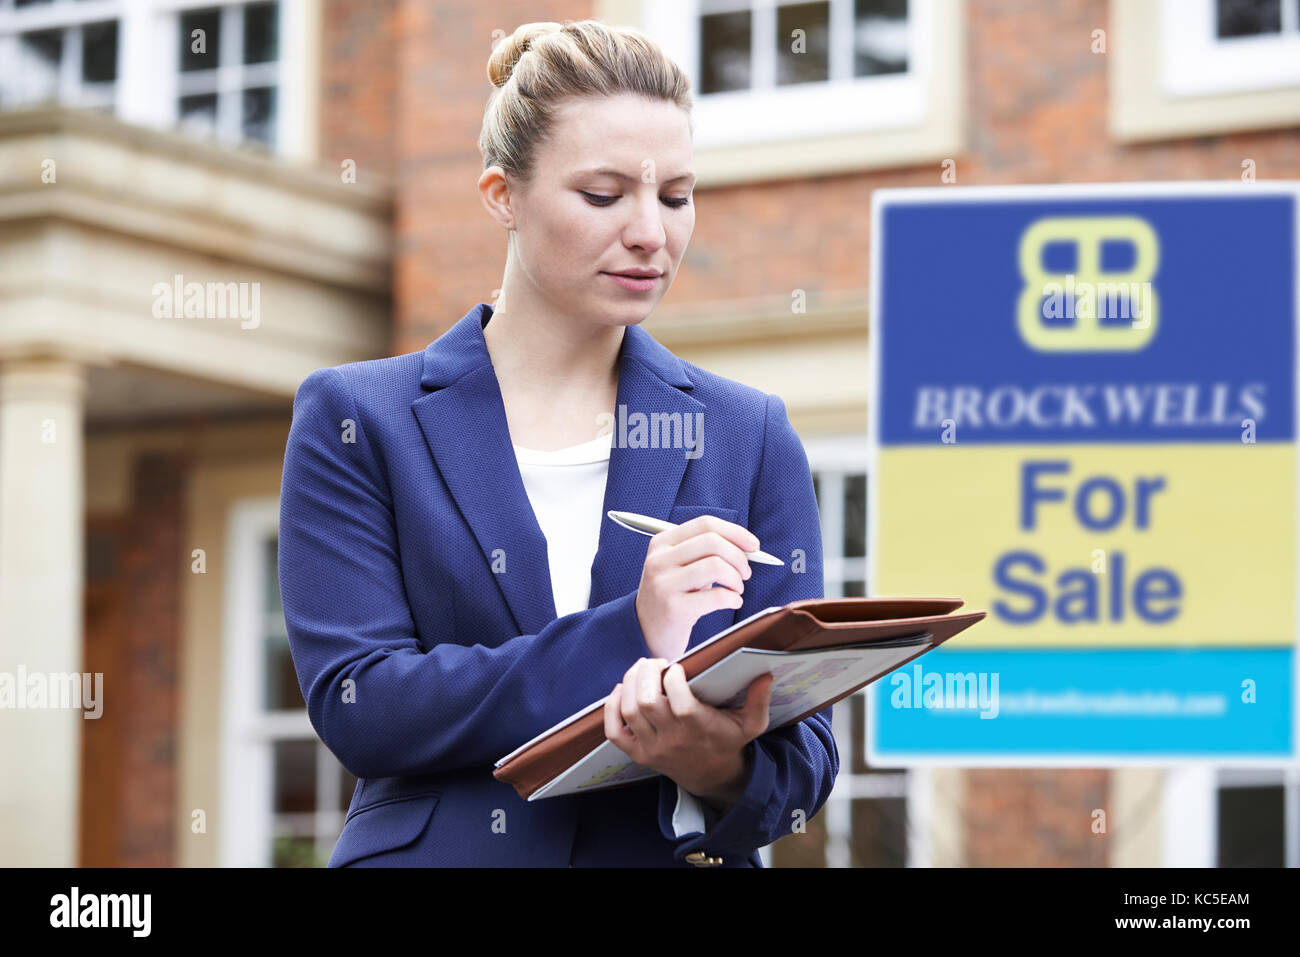 Female Realtor Standing Outside Residential Property With For Sale Sign - Stock Image